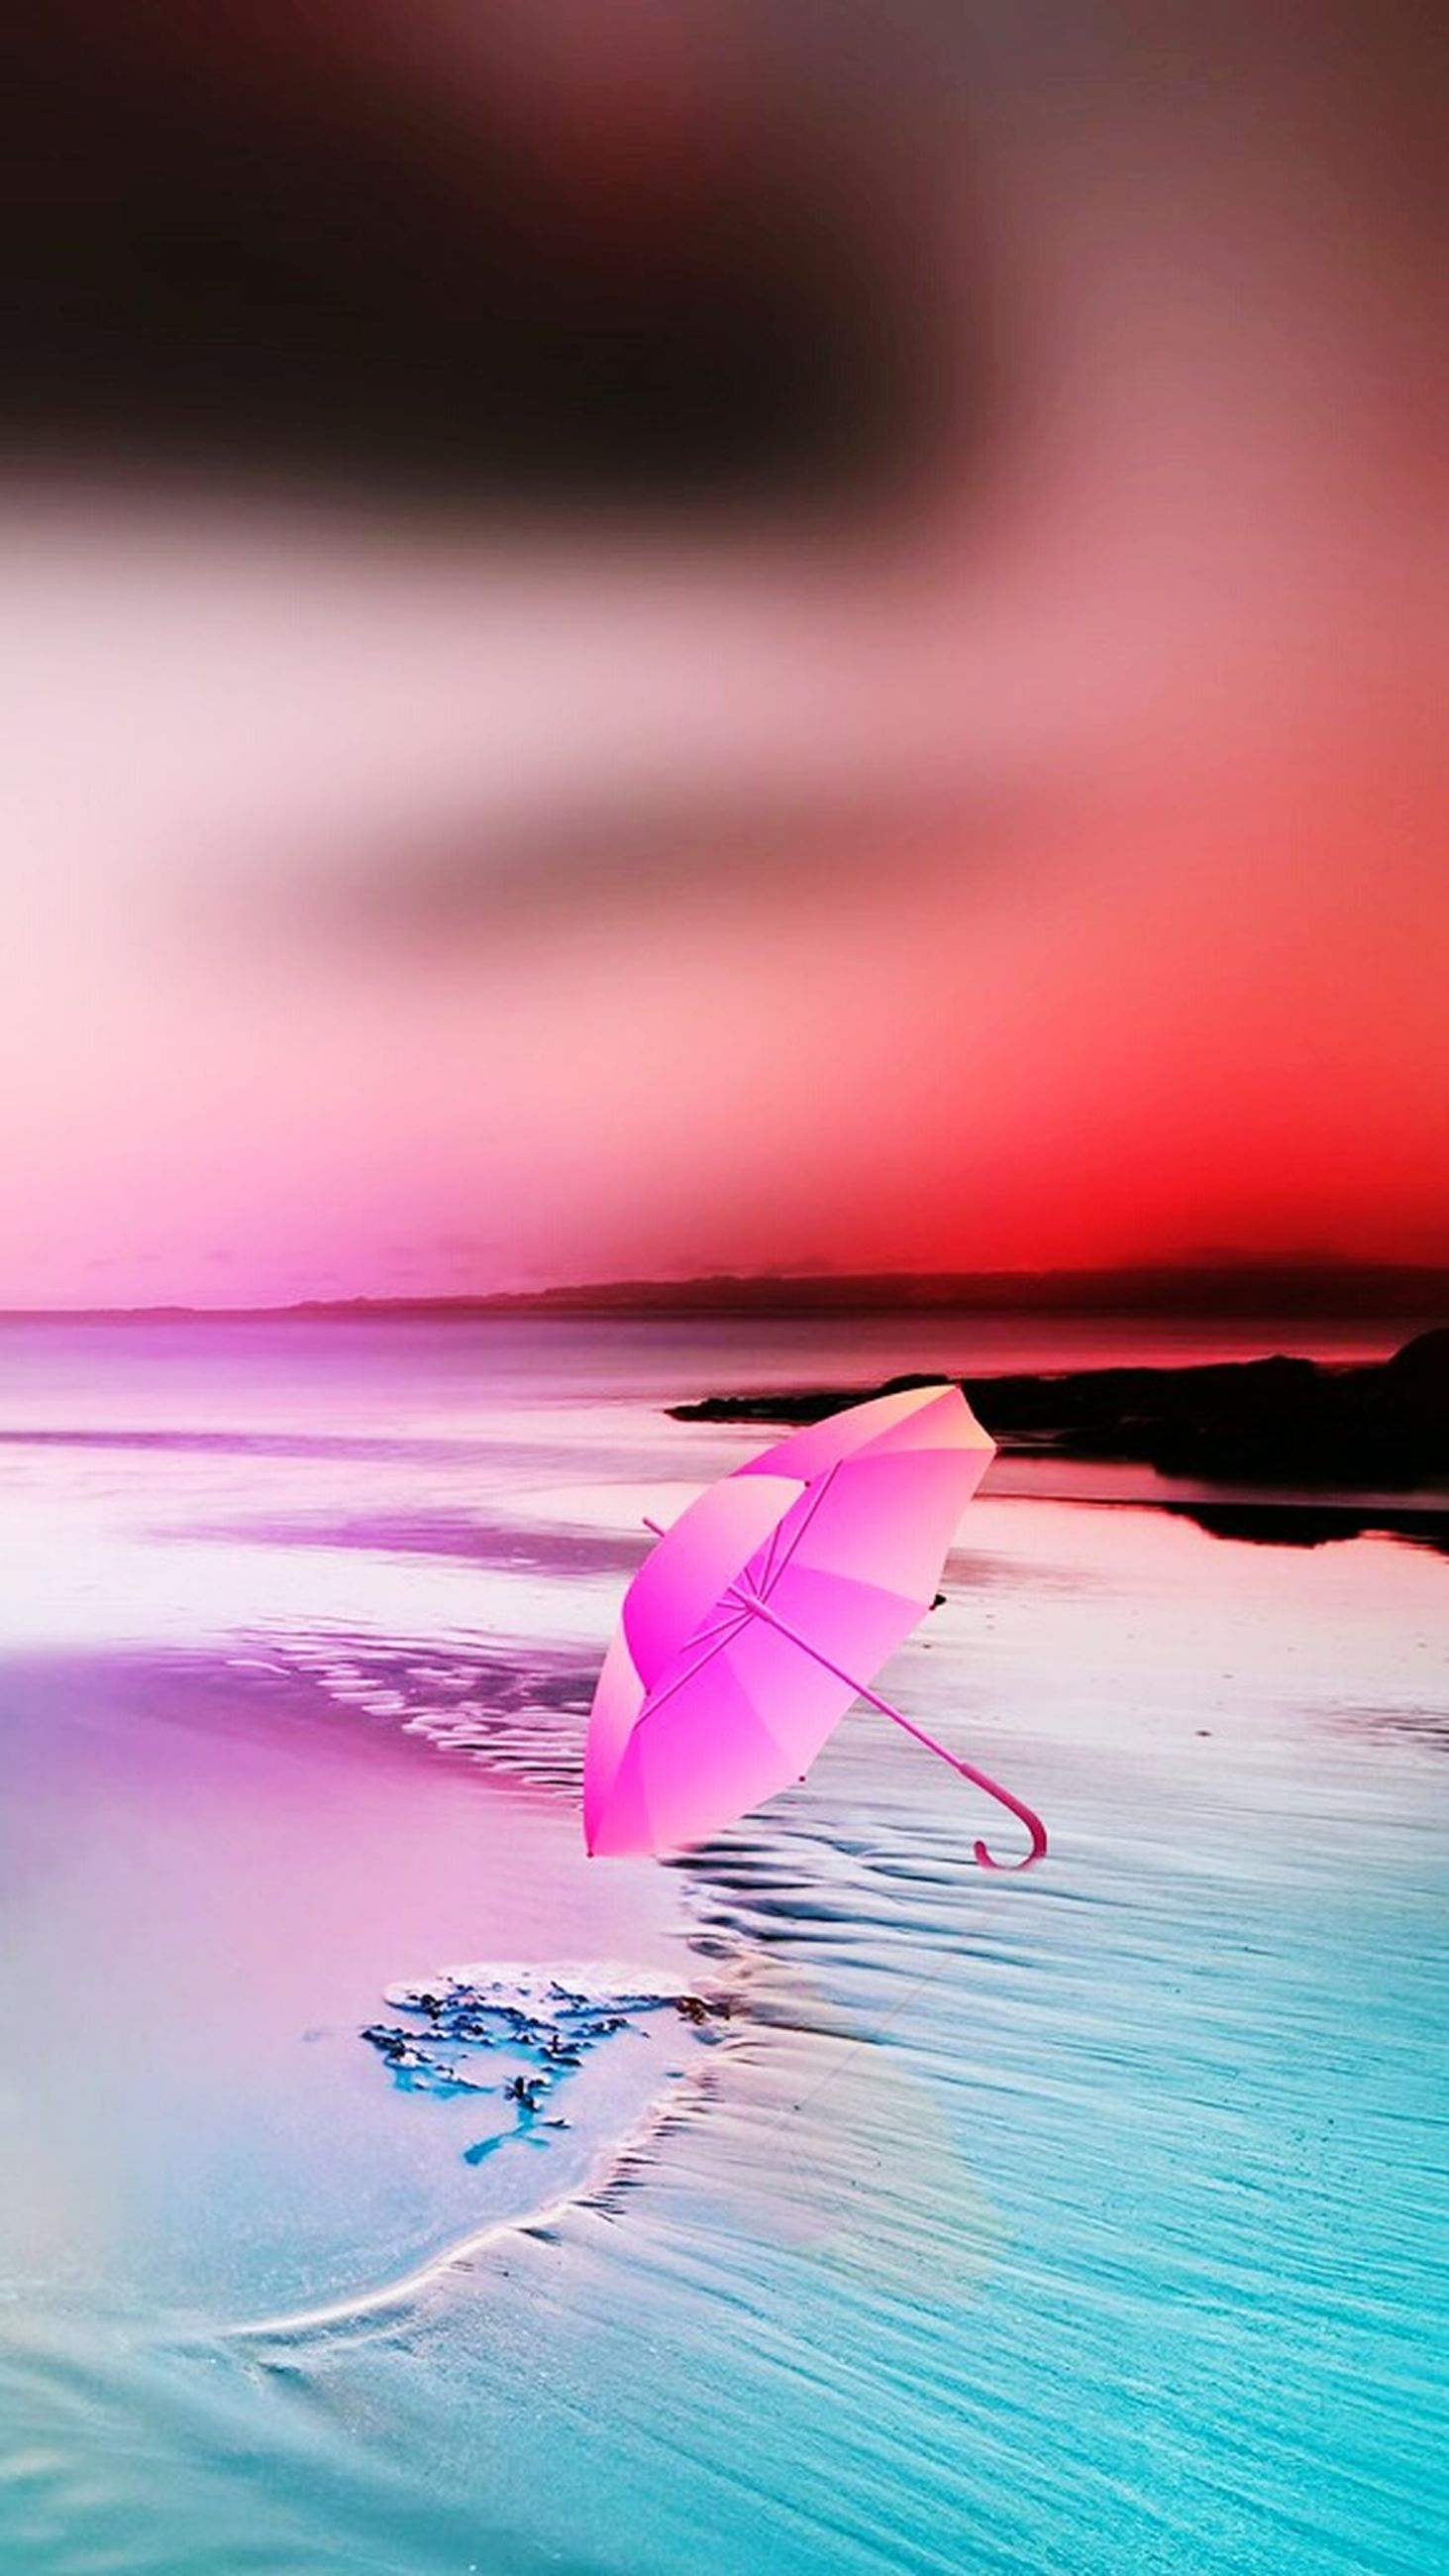 sea, beach, pink color, sunset, water, horizon over water, no people, sand, wave, paper, blue, beauty in nature, sky, nature, outdoors, close-up, day